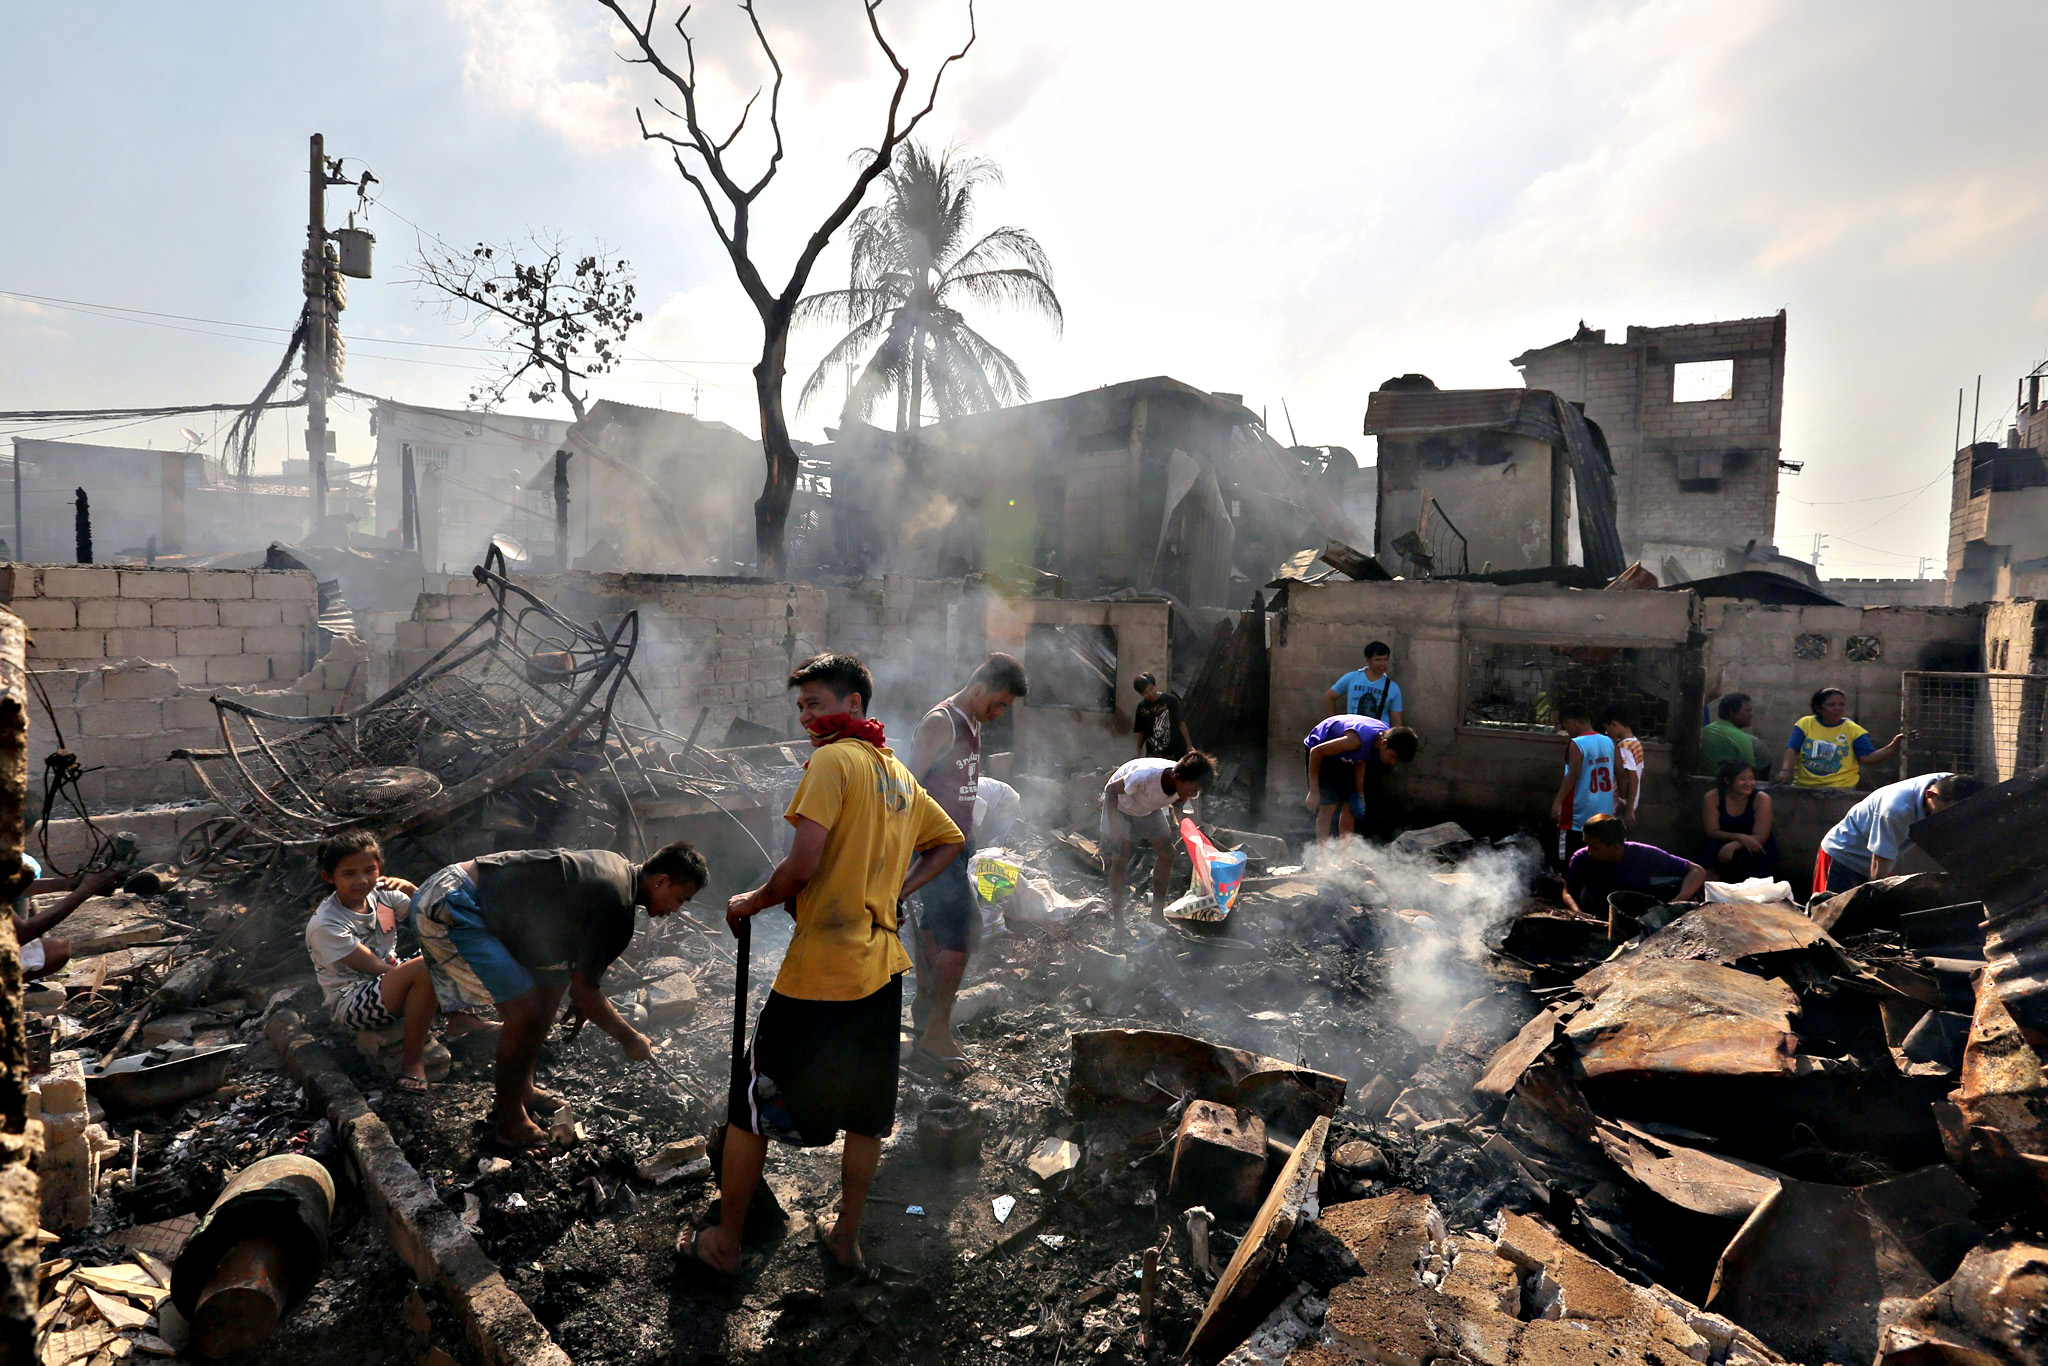 Filipinos search for salvageable materials following a fire in Mandaluyong City, east of Manila, Philippines, 26 November 2015. At least 1,000 families were displaced after a fire razed through homes in a residential area in Mandaluyong City, reports said